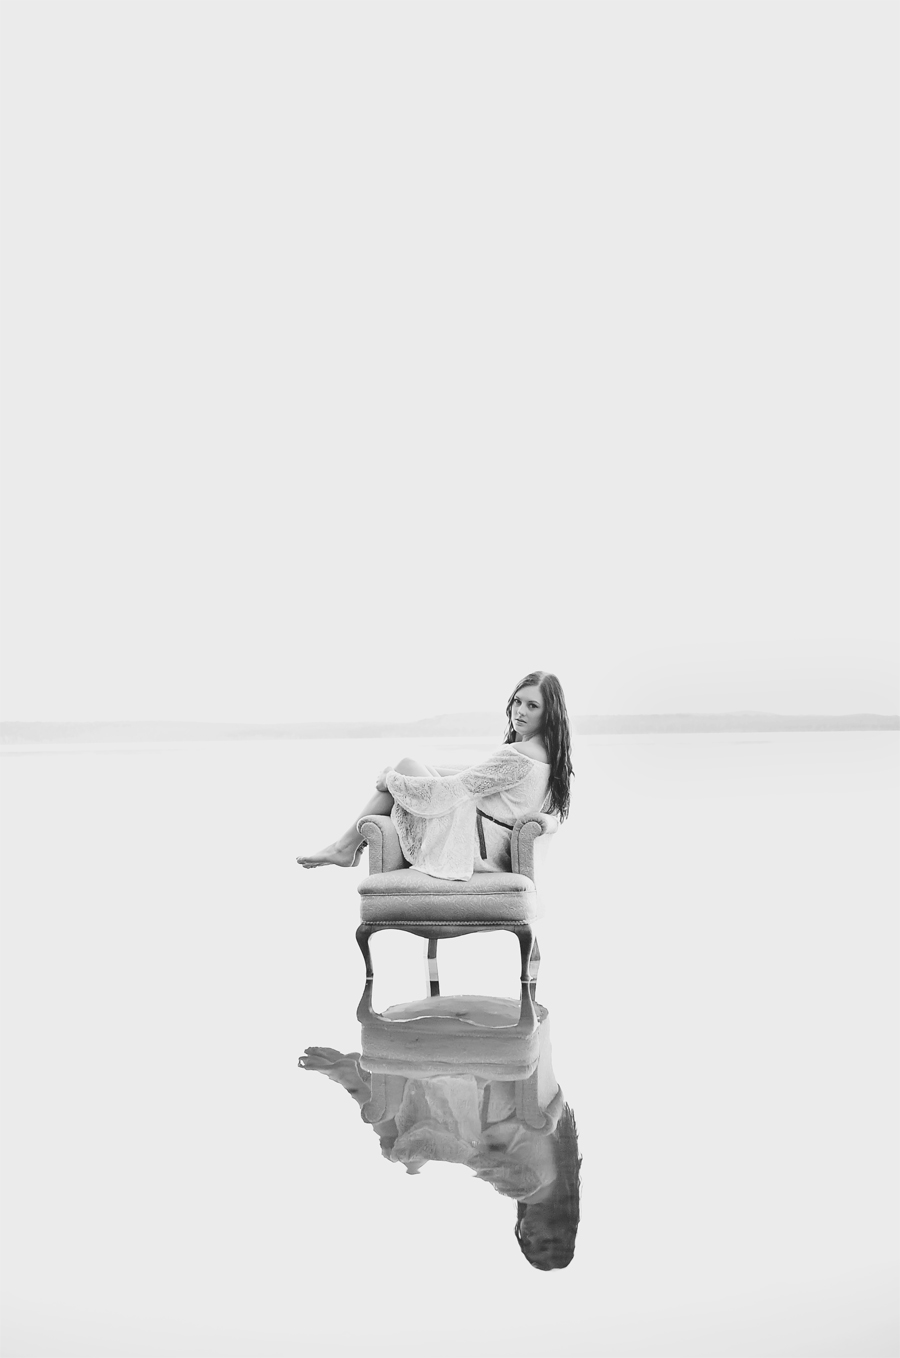 girl in lake on a chair